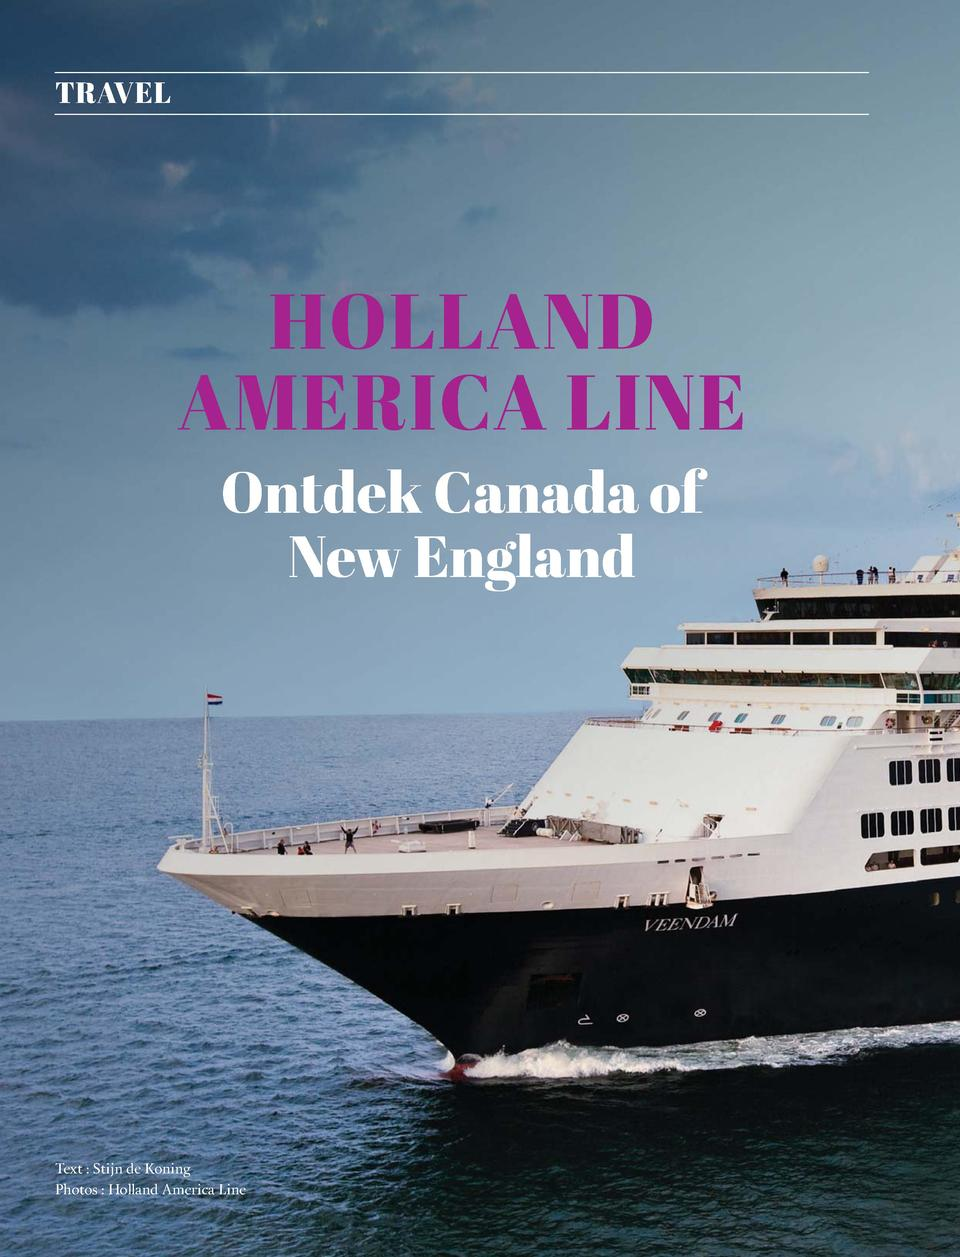 64  TRAVEL  HOLLAND AMERICA LINE Ontdek Canada of New England  Text   Stijn de Koning Photos   Holland America Line